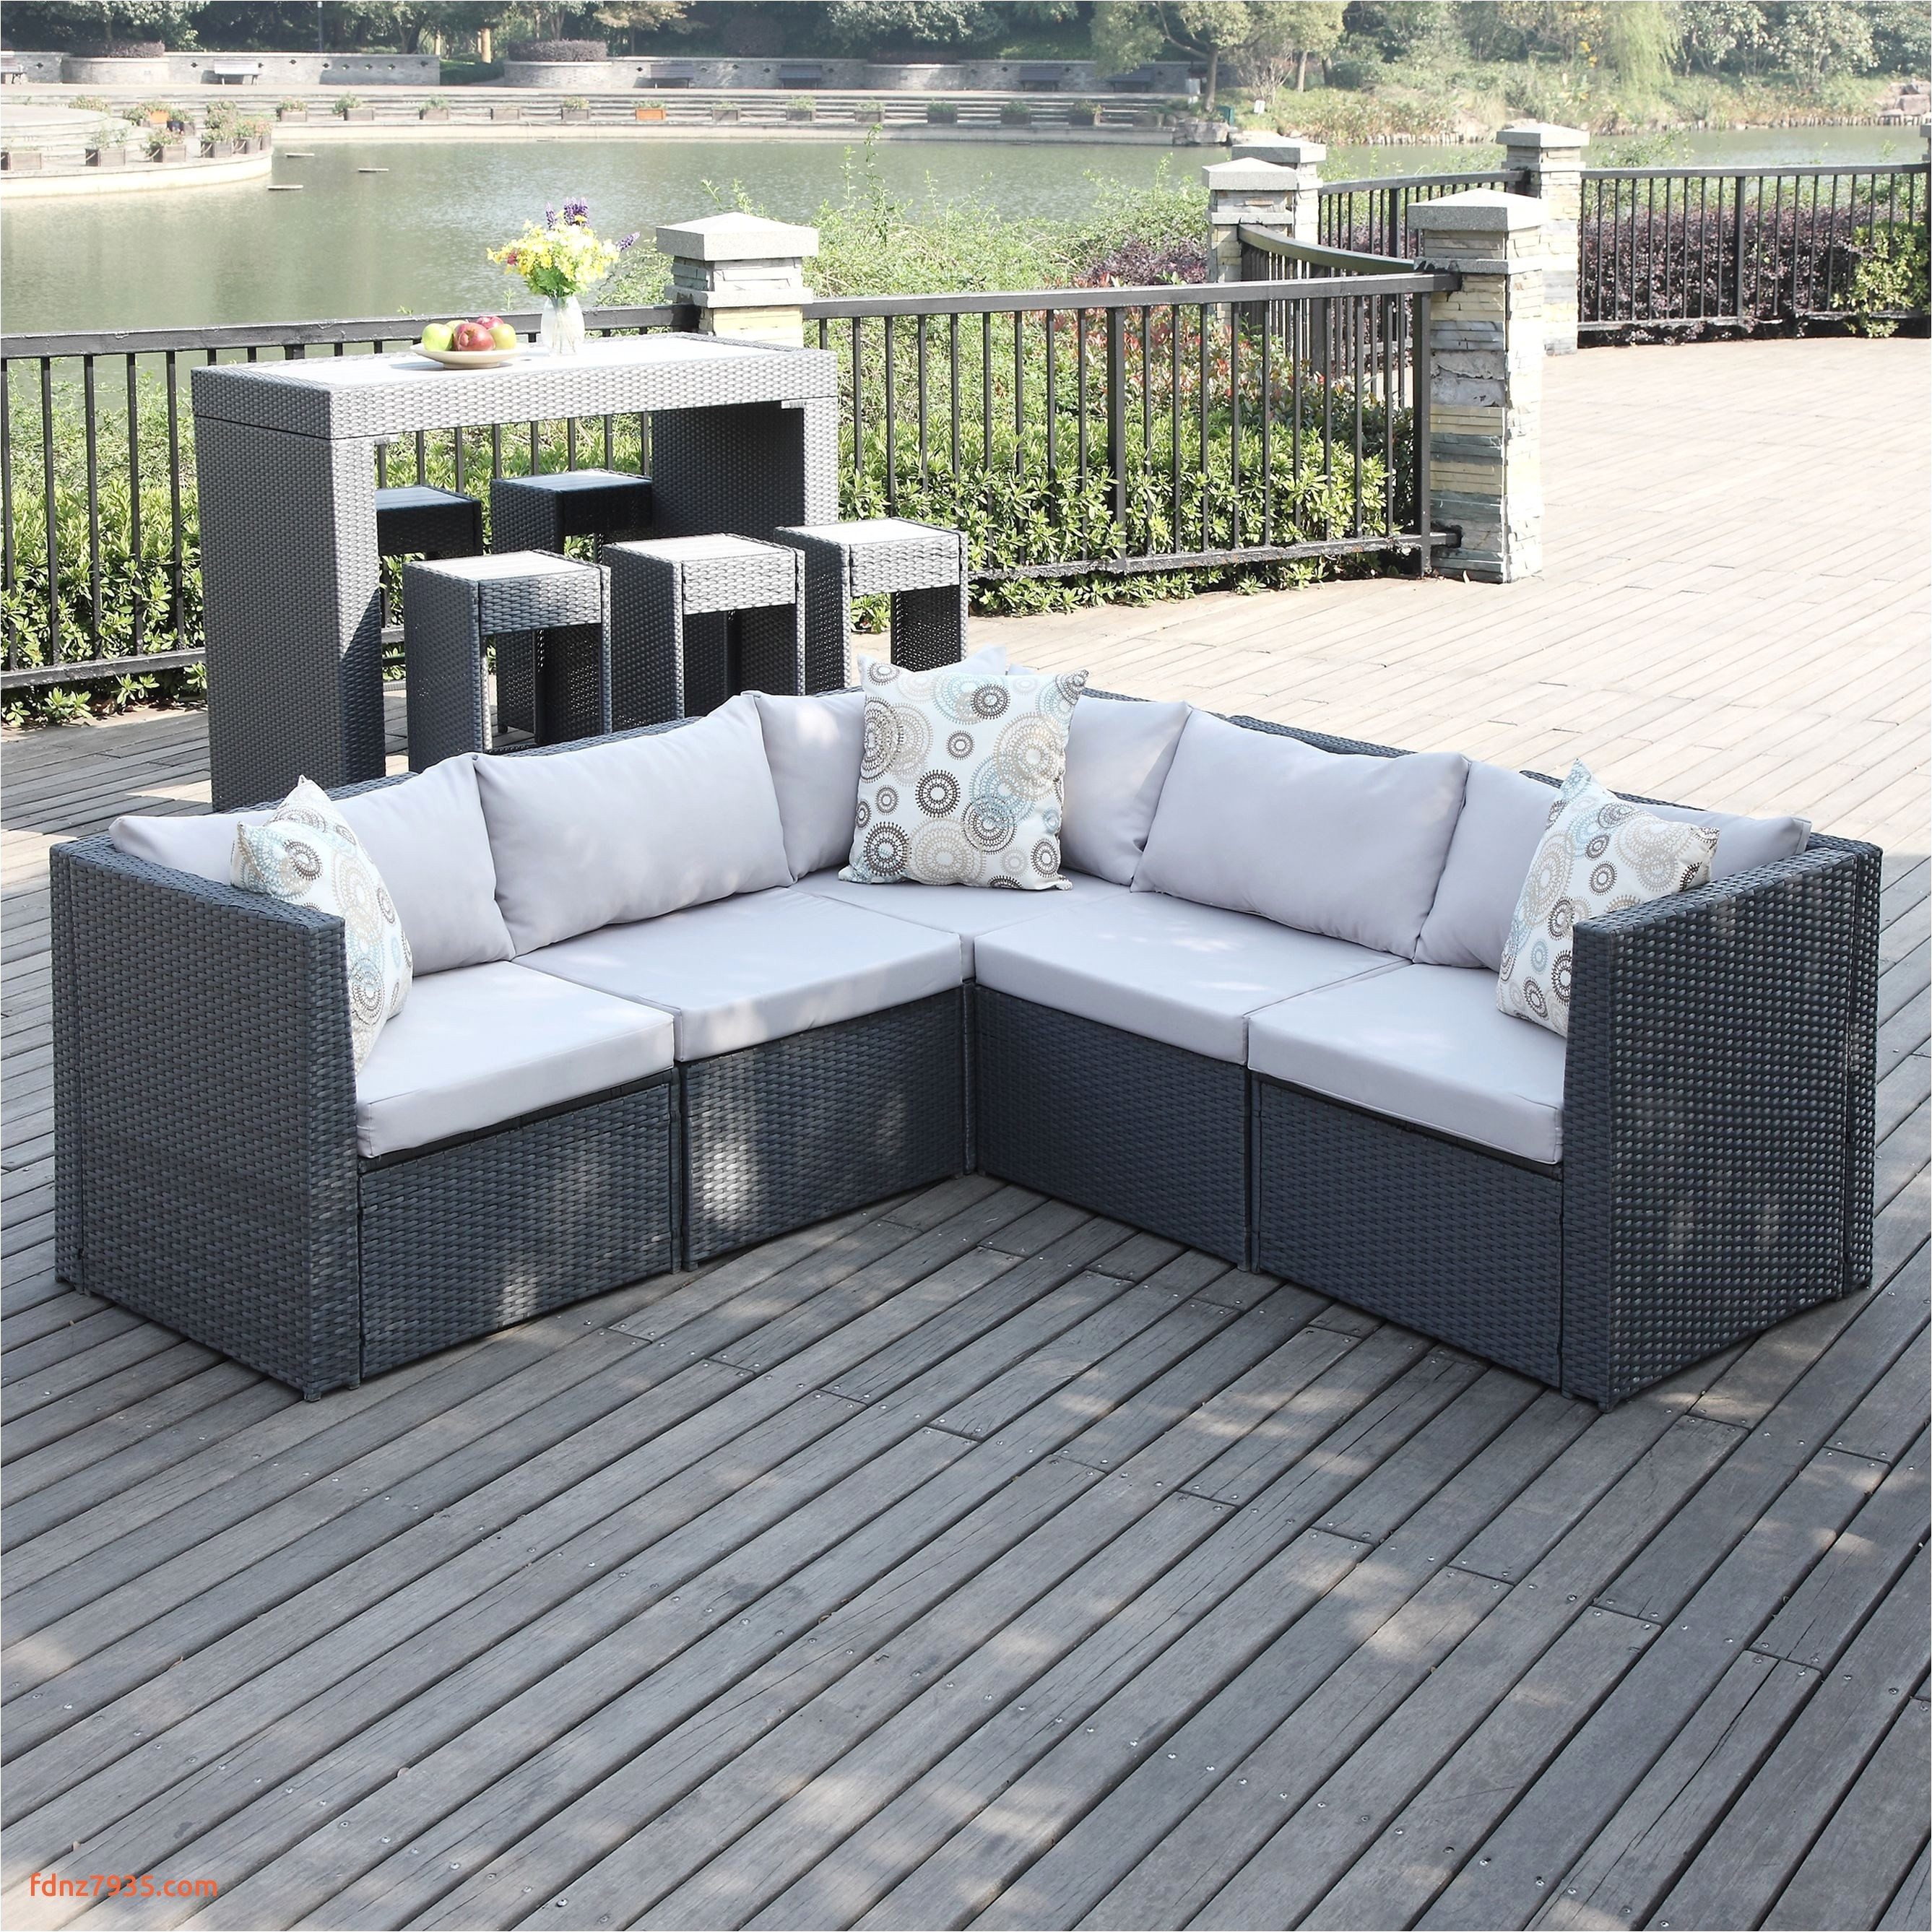 patio sectional furniture unique wicker outdoor sofa 0d patio chairs concept patio sectional sale